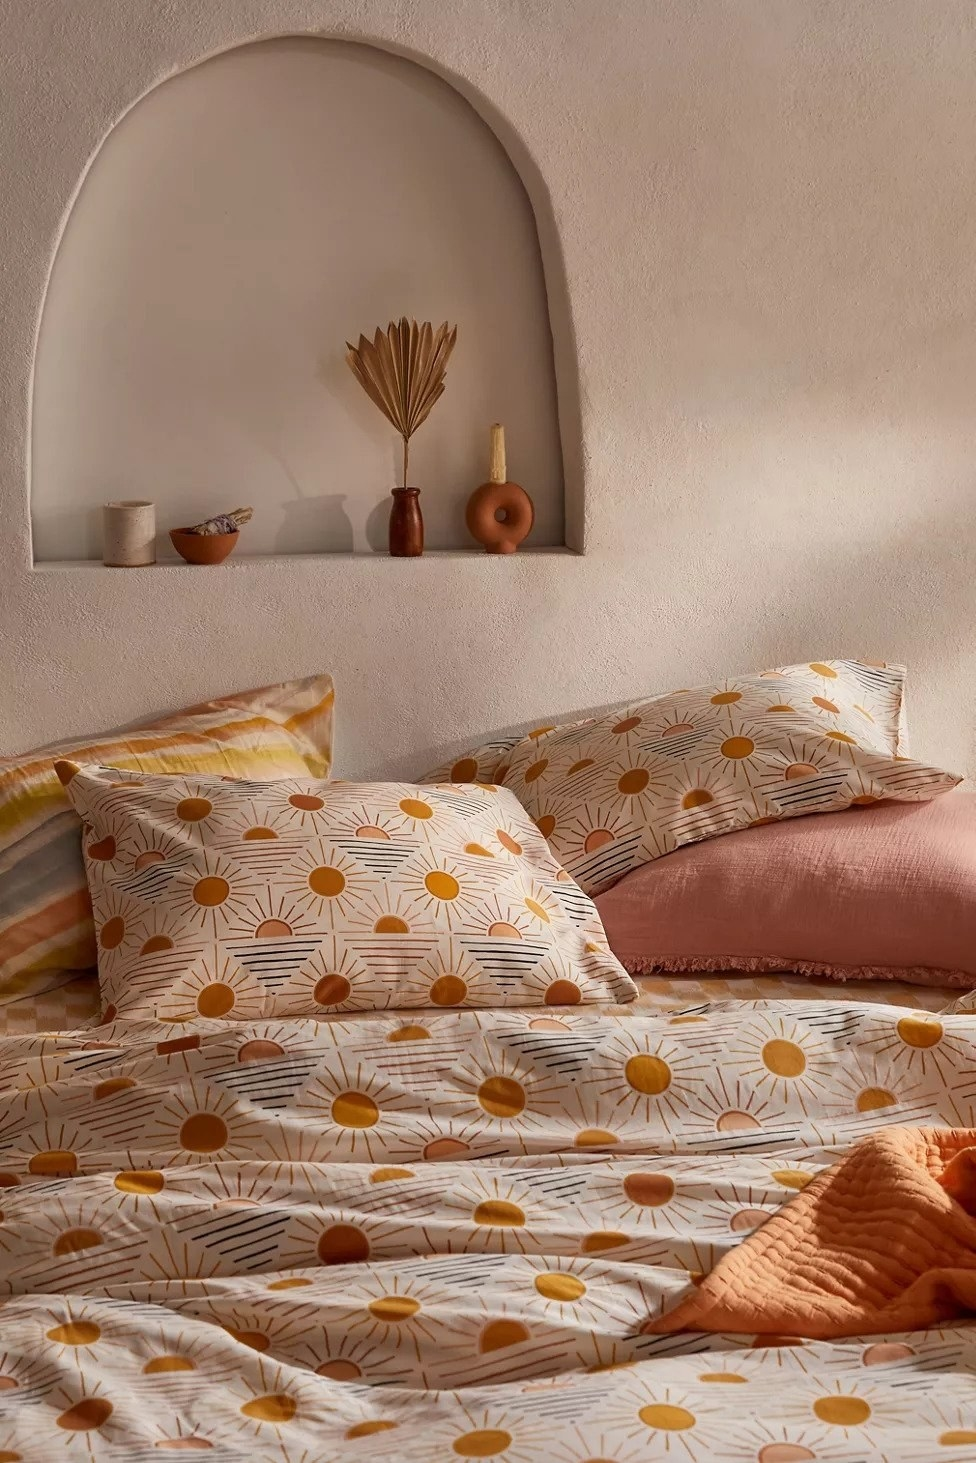 duvet cover and pillow shames with sun pattern throughout